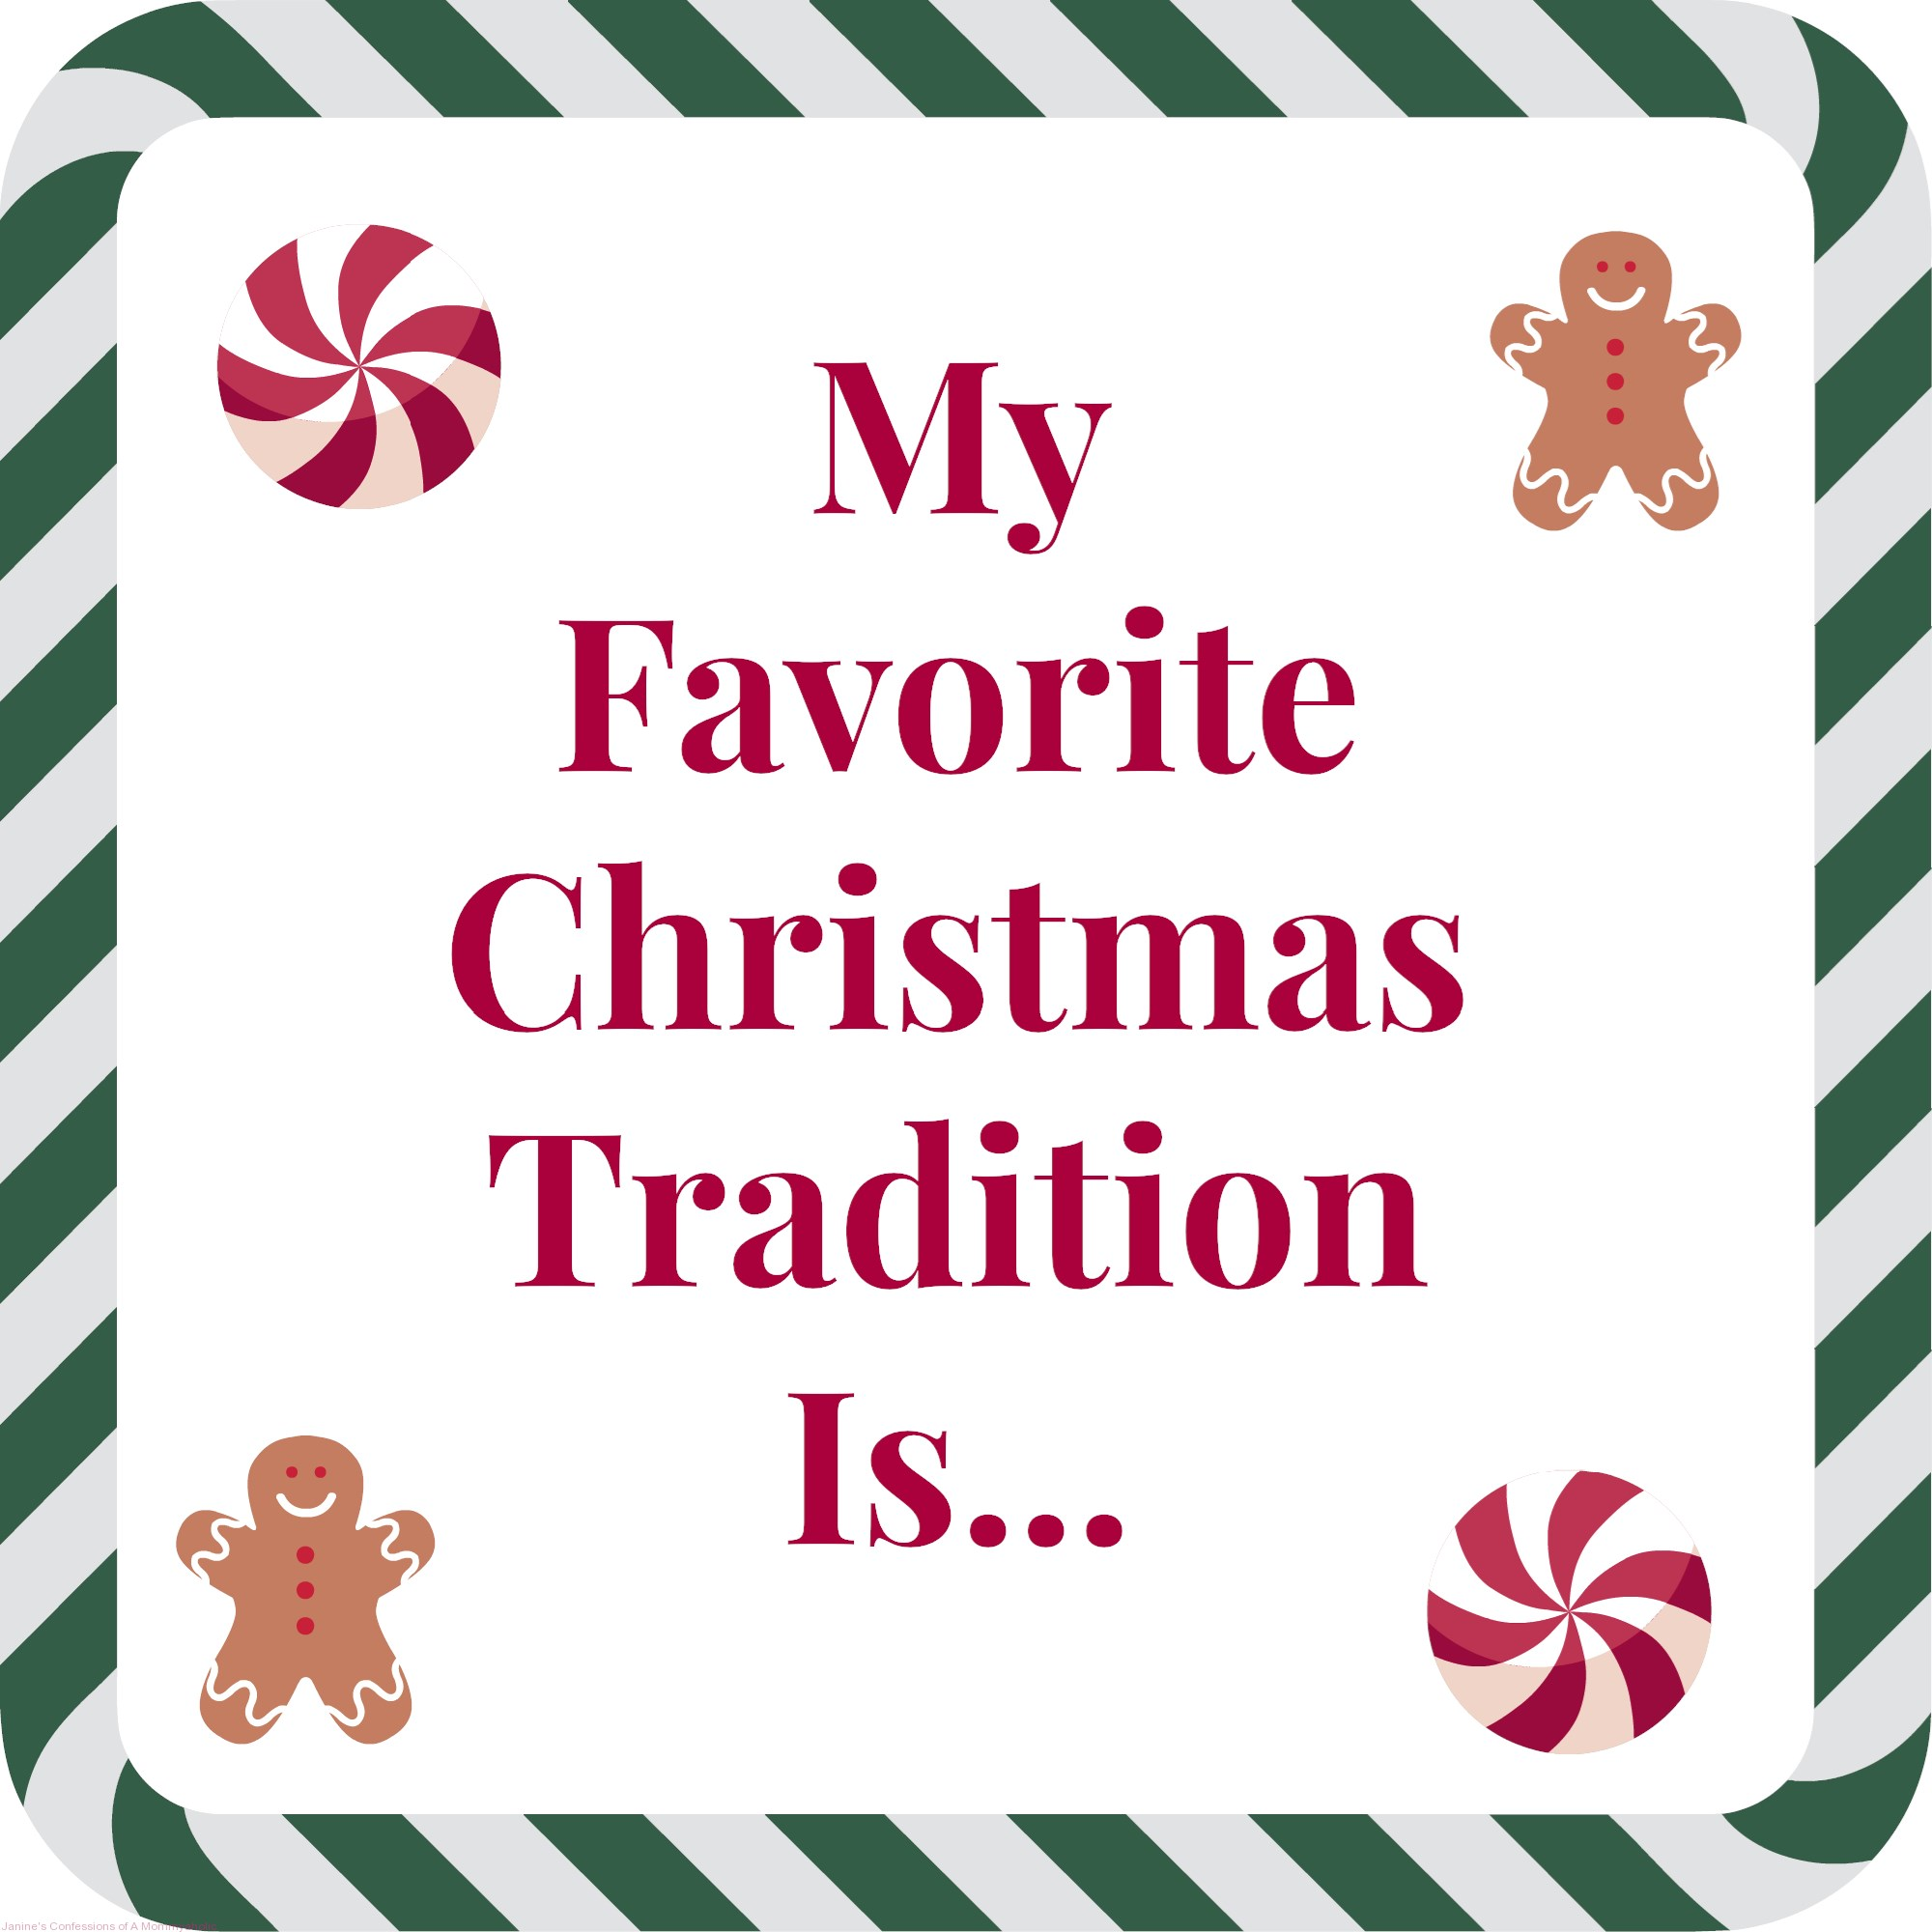 essays on holiday traditions English holidays essay writing topics-holiday posted on october 15, 2018 author categories essay examples family holiday traditions leave a reply cancel reply your email address will not be published required fields are marked  comment name  email  website post navigation.